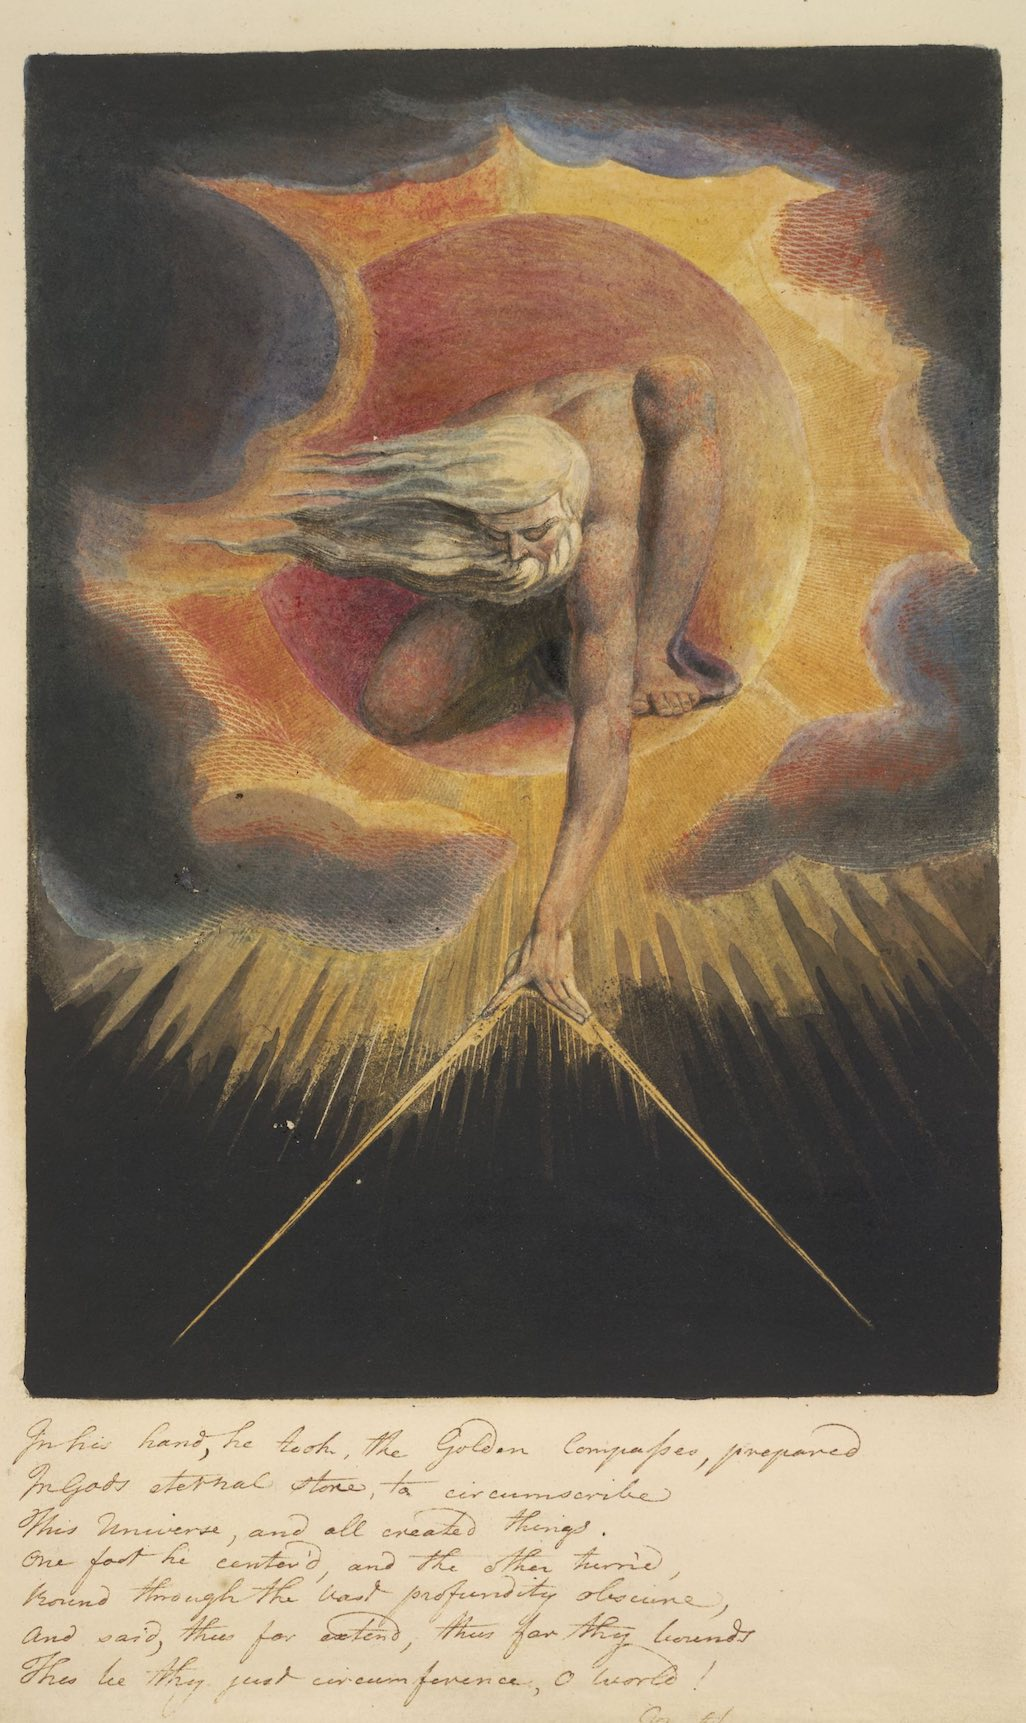 Figure 1. William Blake, The Ancient of Days, frontispiece to Europe: A Prophecy, 1794.